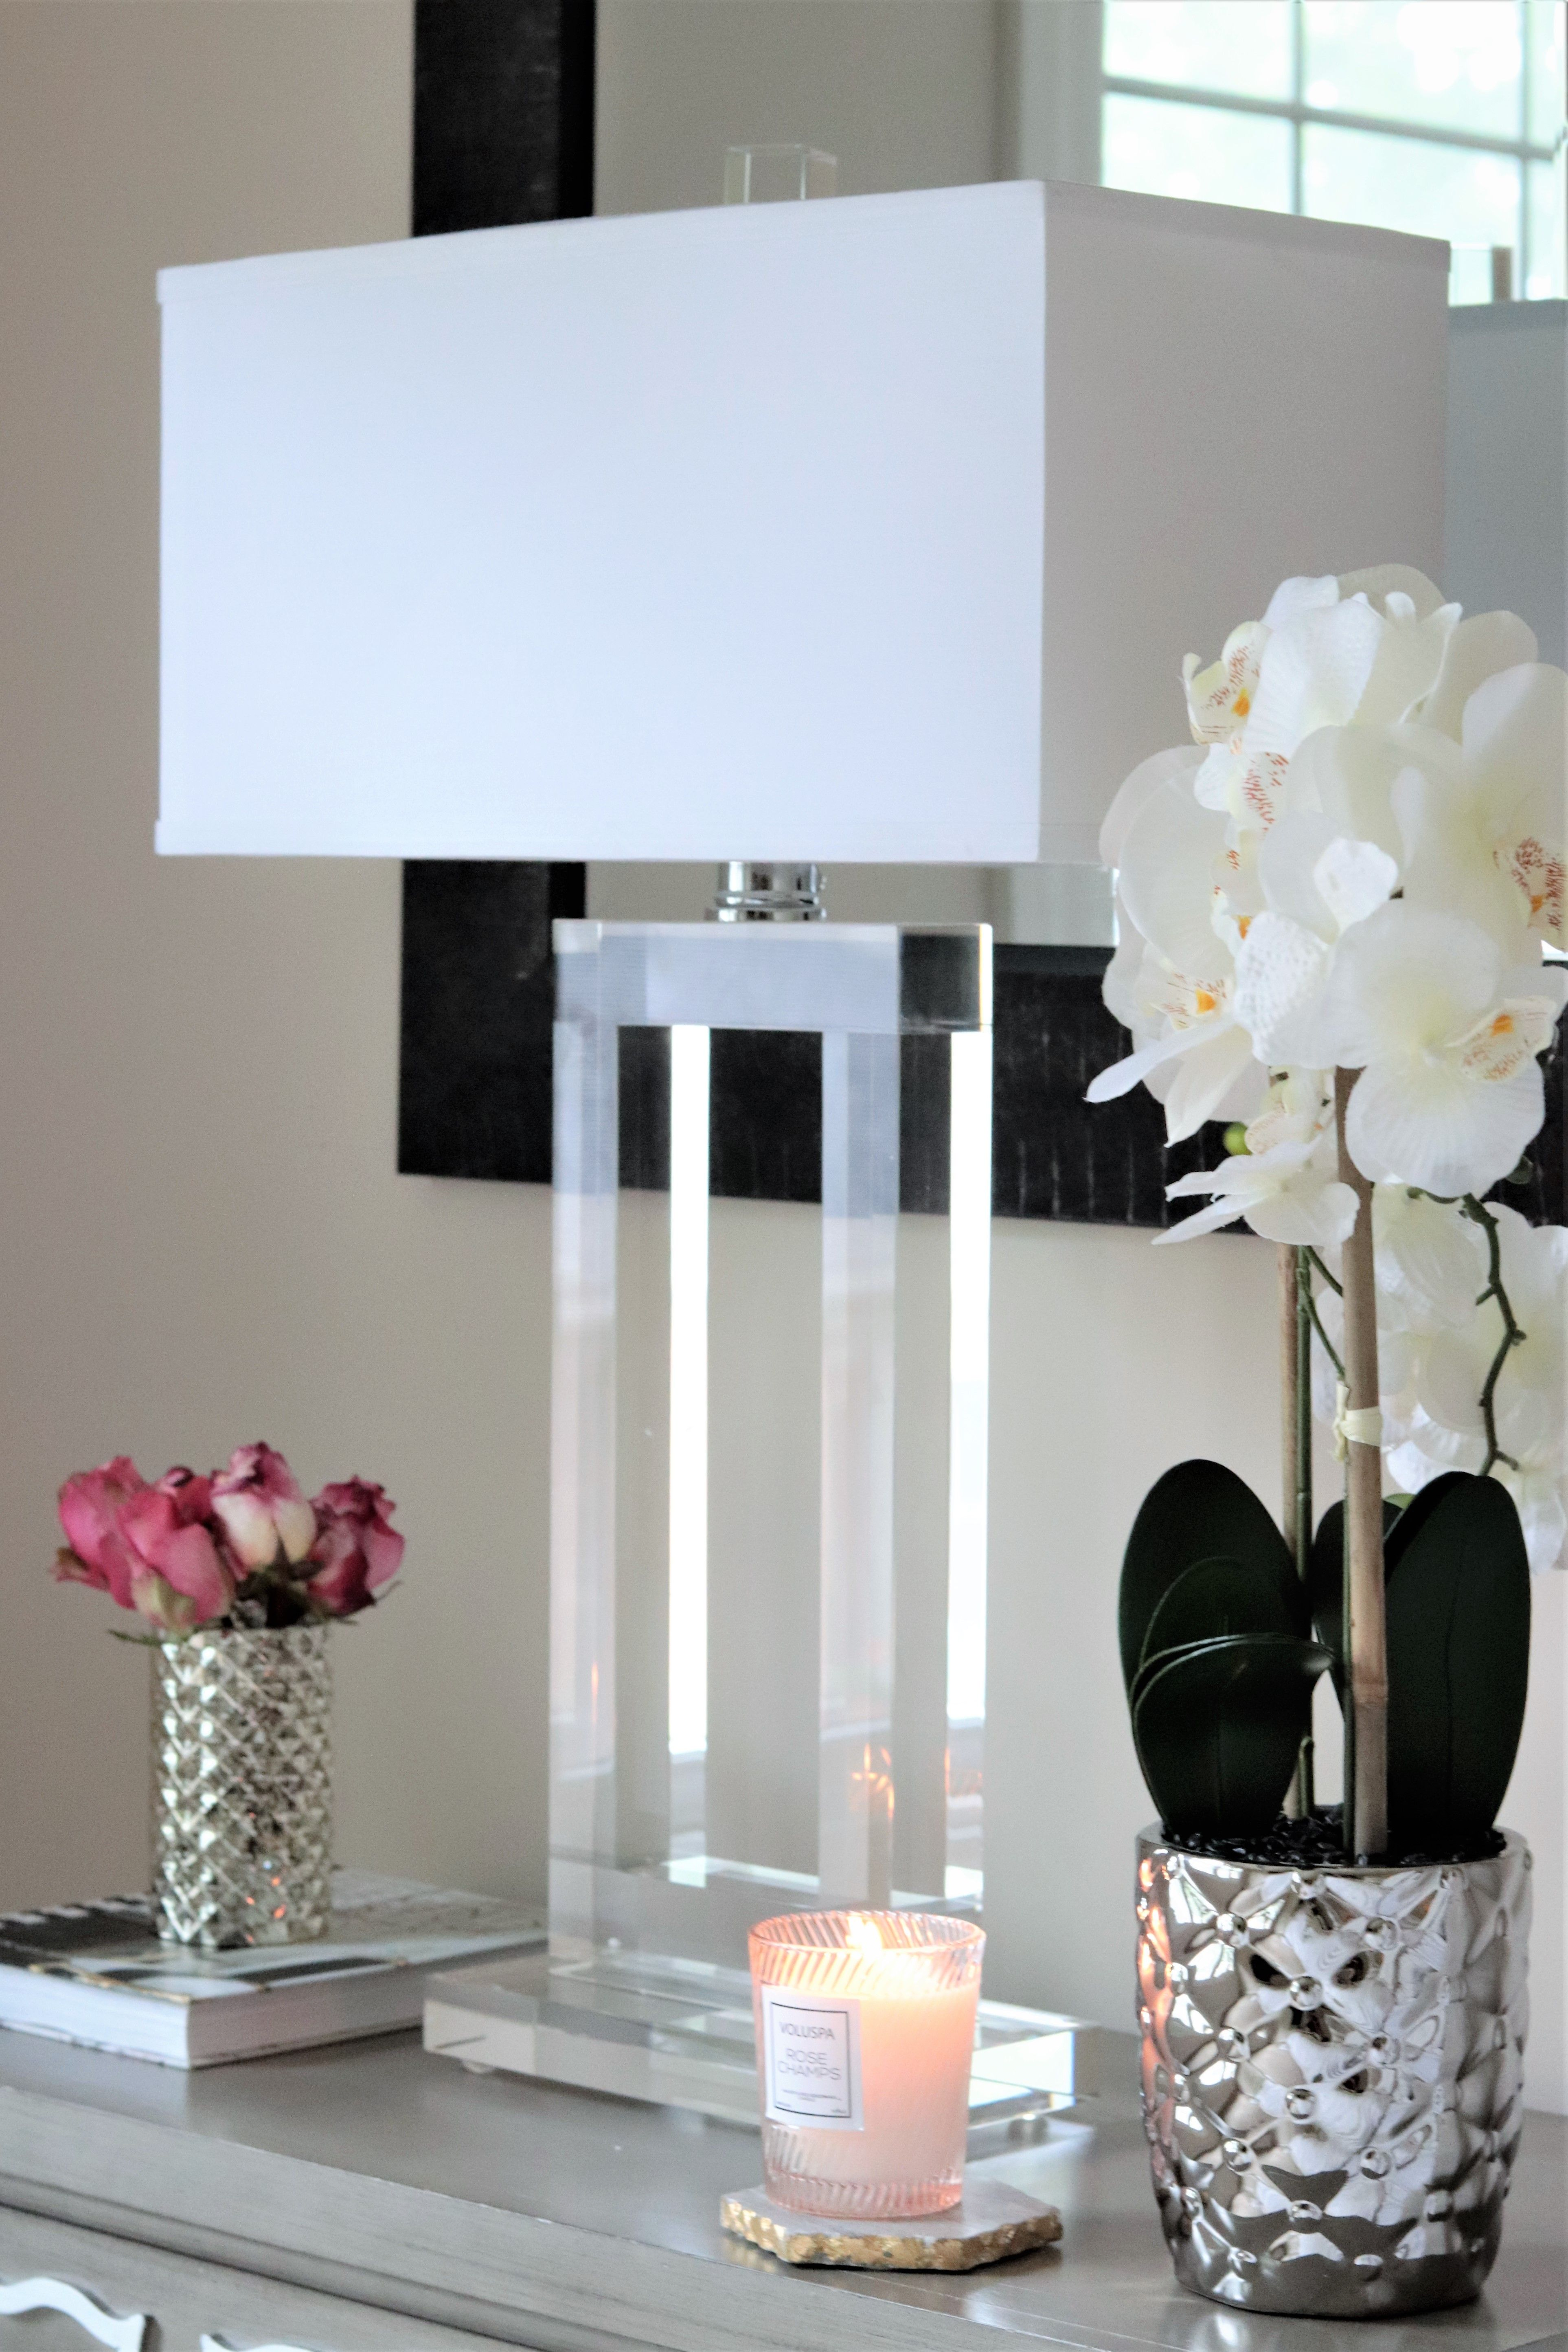 Vienna Full Spectrum Window Modern Crystal Table Lamp 3m960 Lamps Plus In 2020 Table Lamps For Bedroom Crystal Table Lamps Modern Lamp